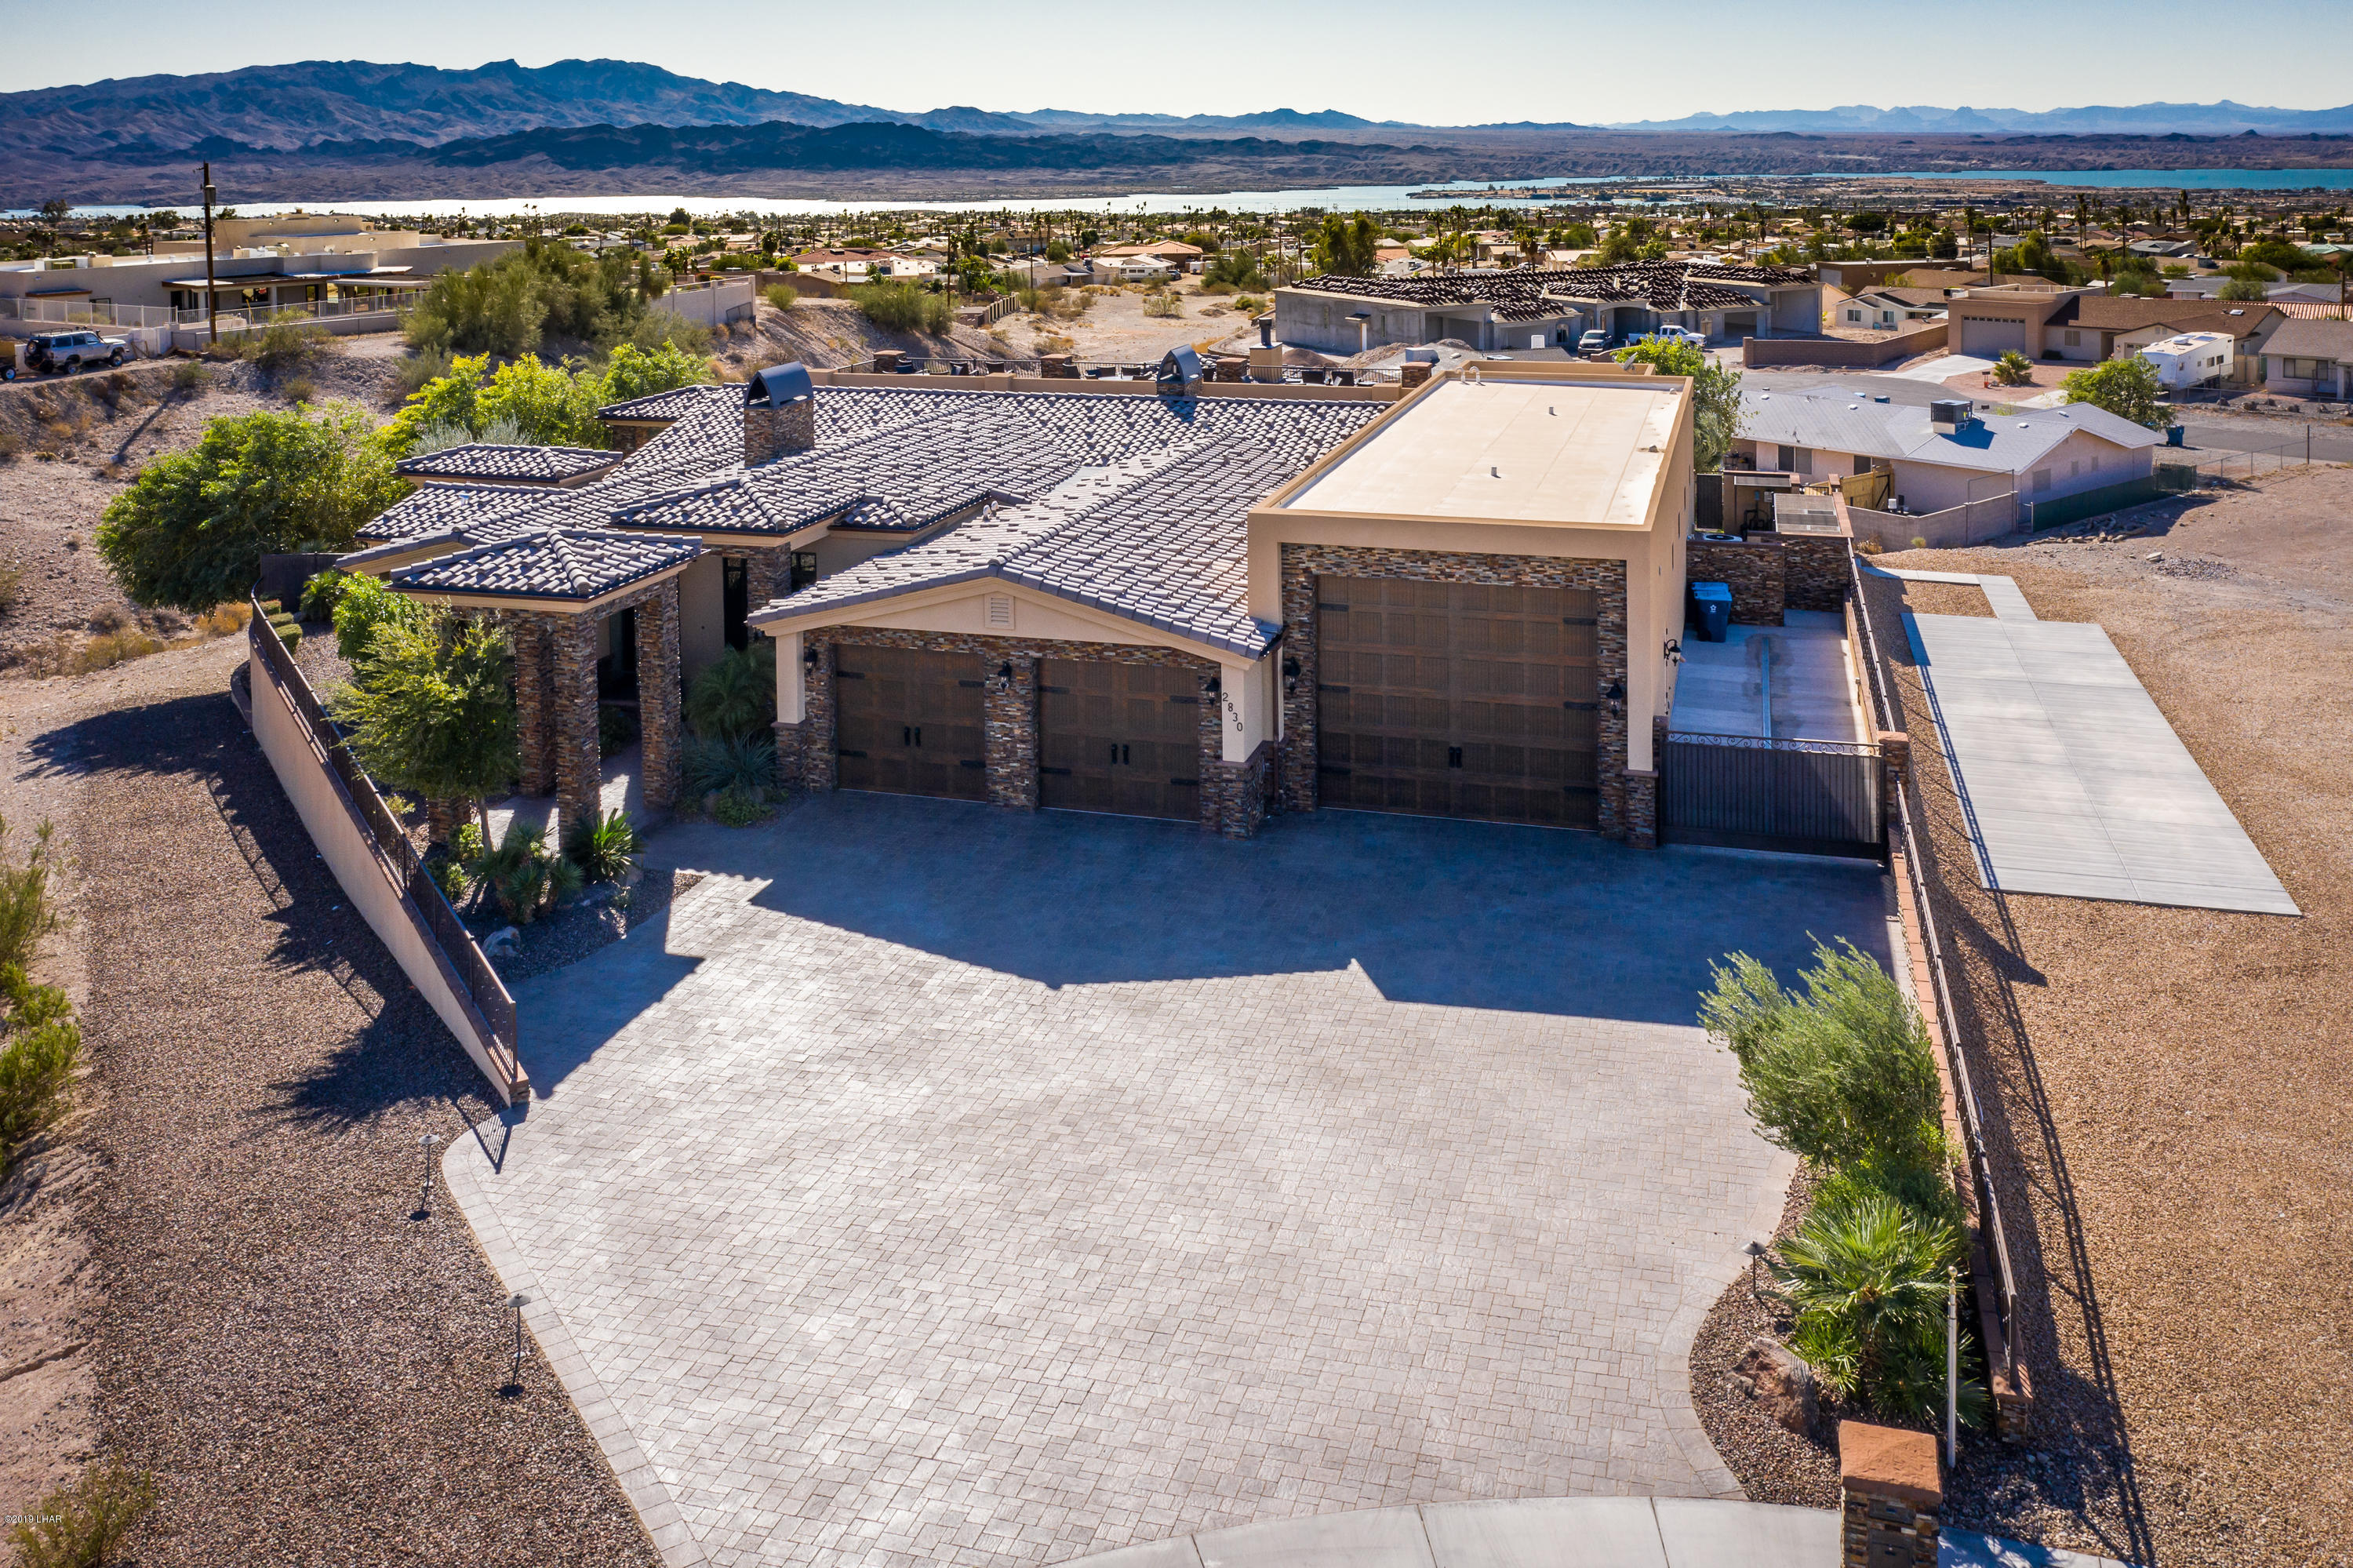 Photo of 2830 Swanee Ln, Lake Havasu City, AZ 86403